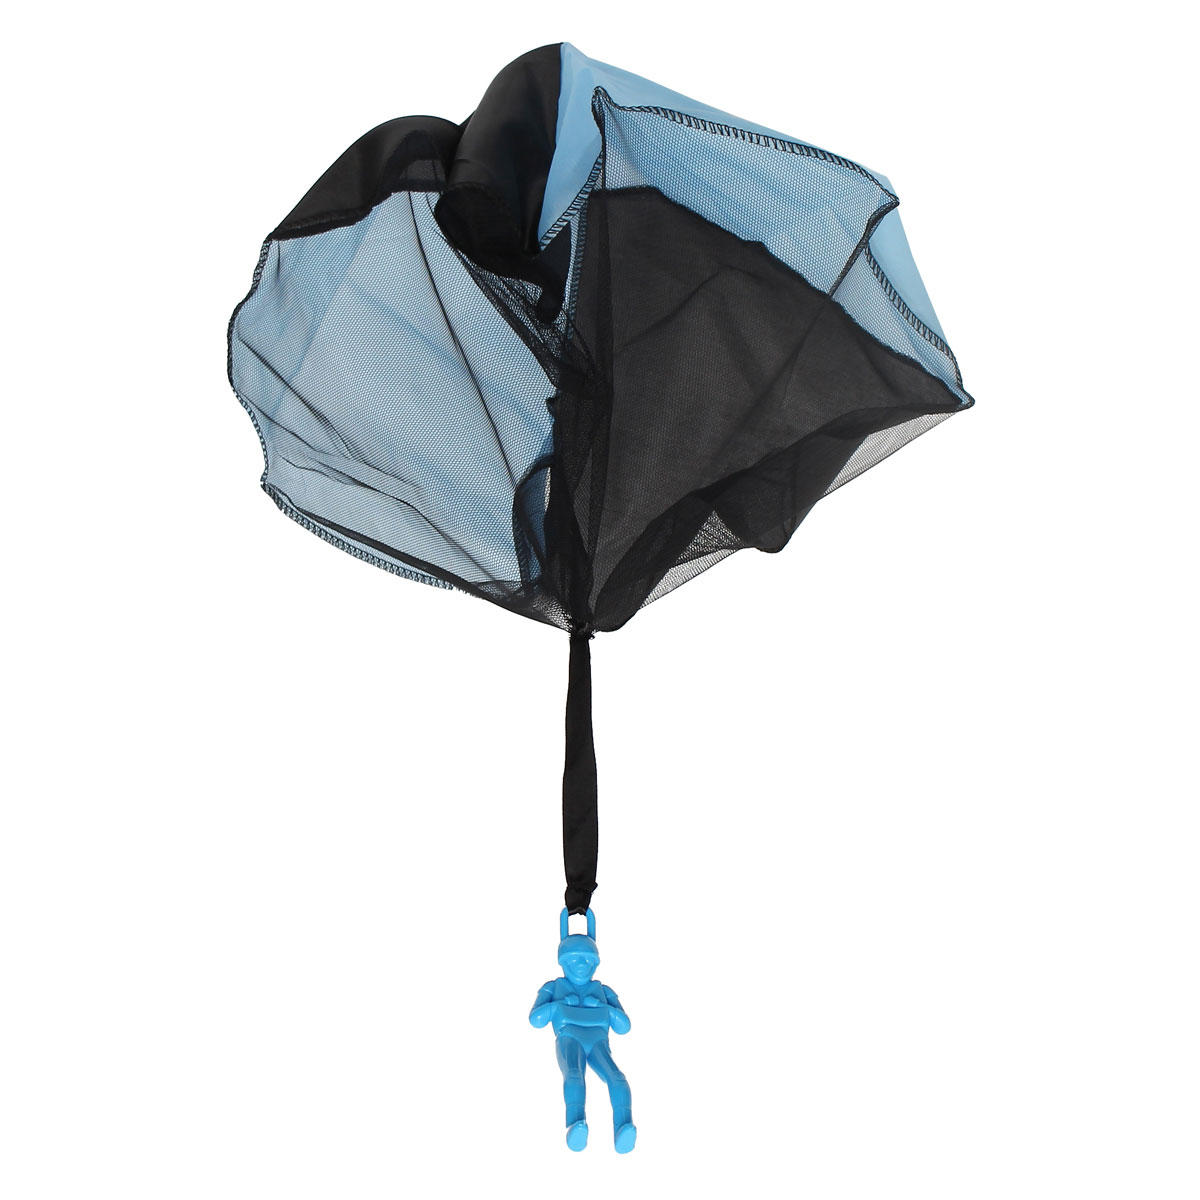 Kids Tangle Toy Hand Throwing Parachute Kite Outdoor Play Game Toy - 7